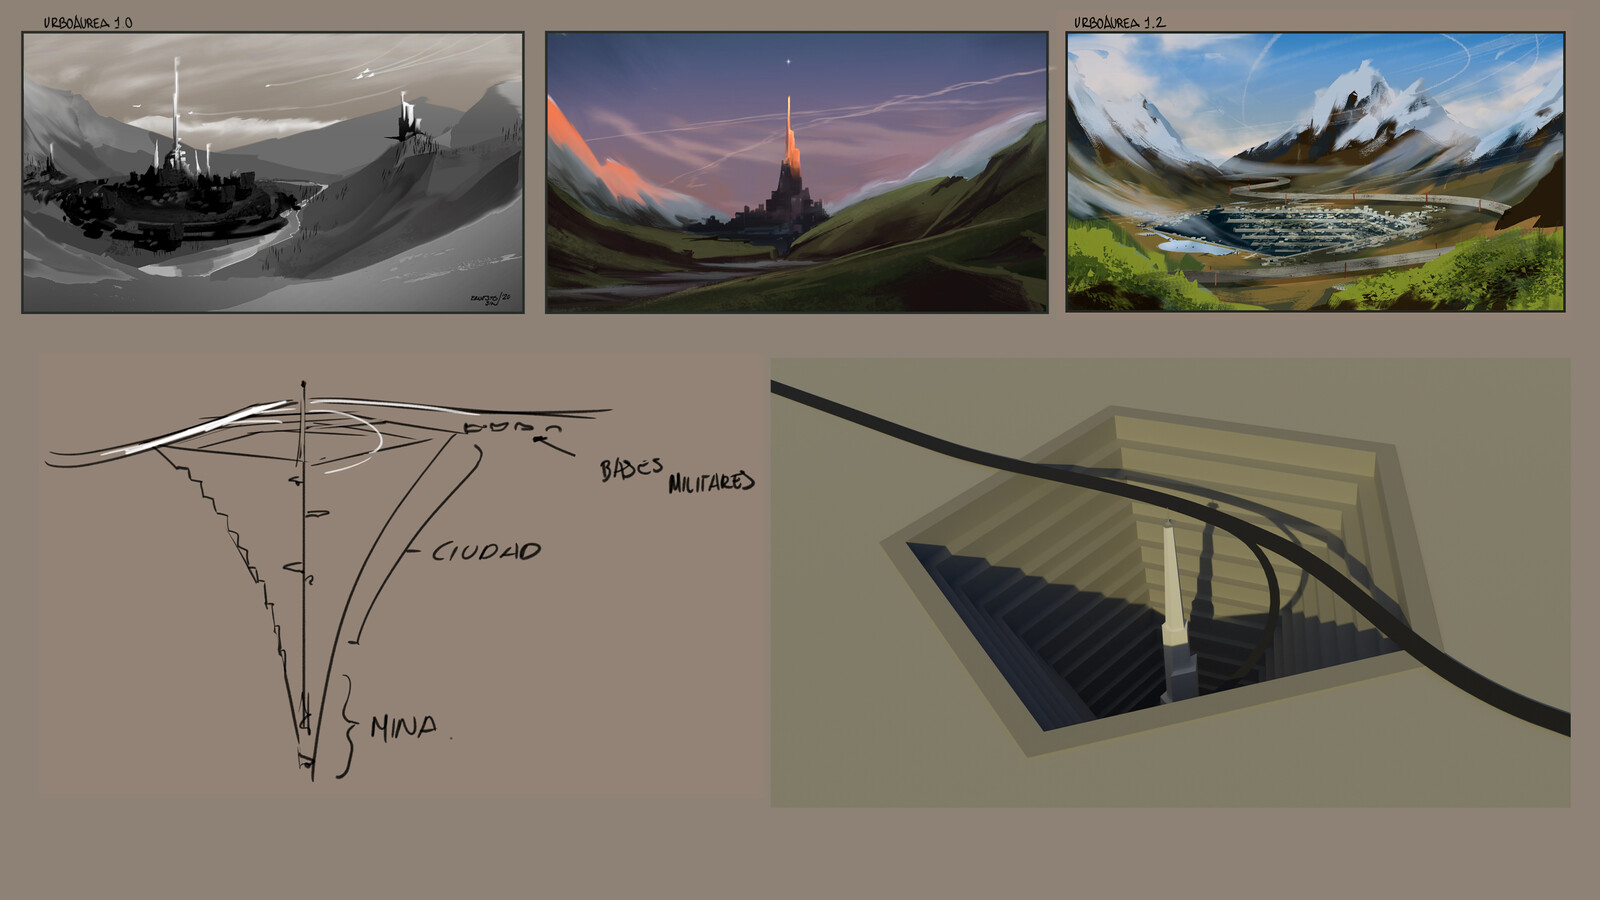 Prelim rough sketches and basic concept of the city.